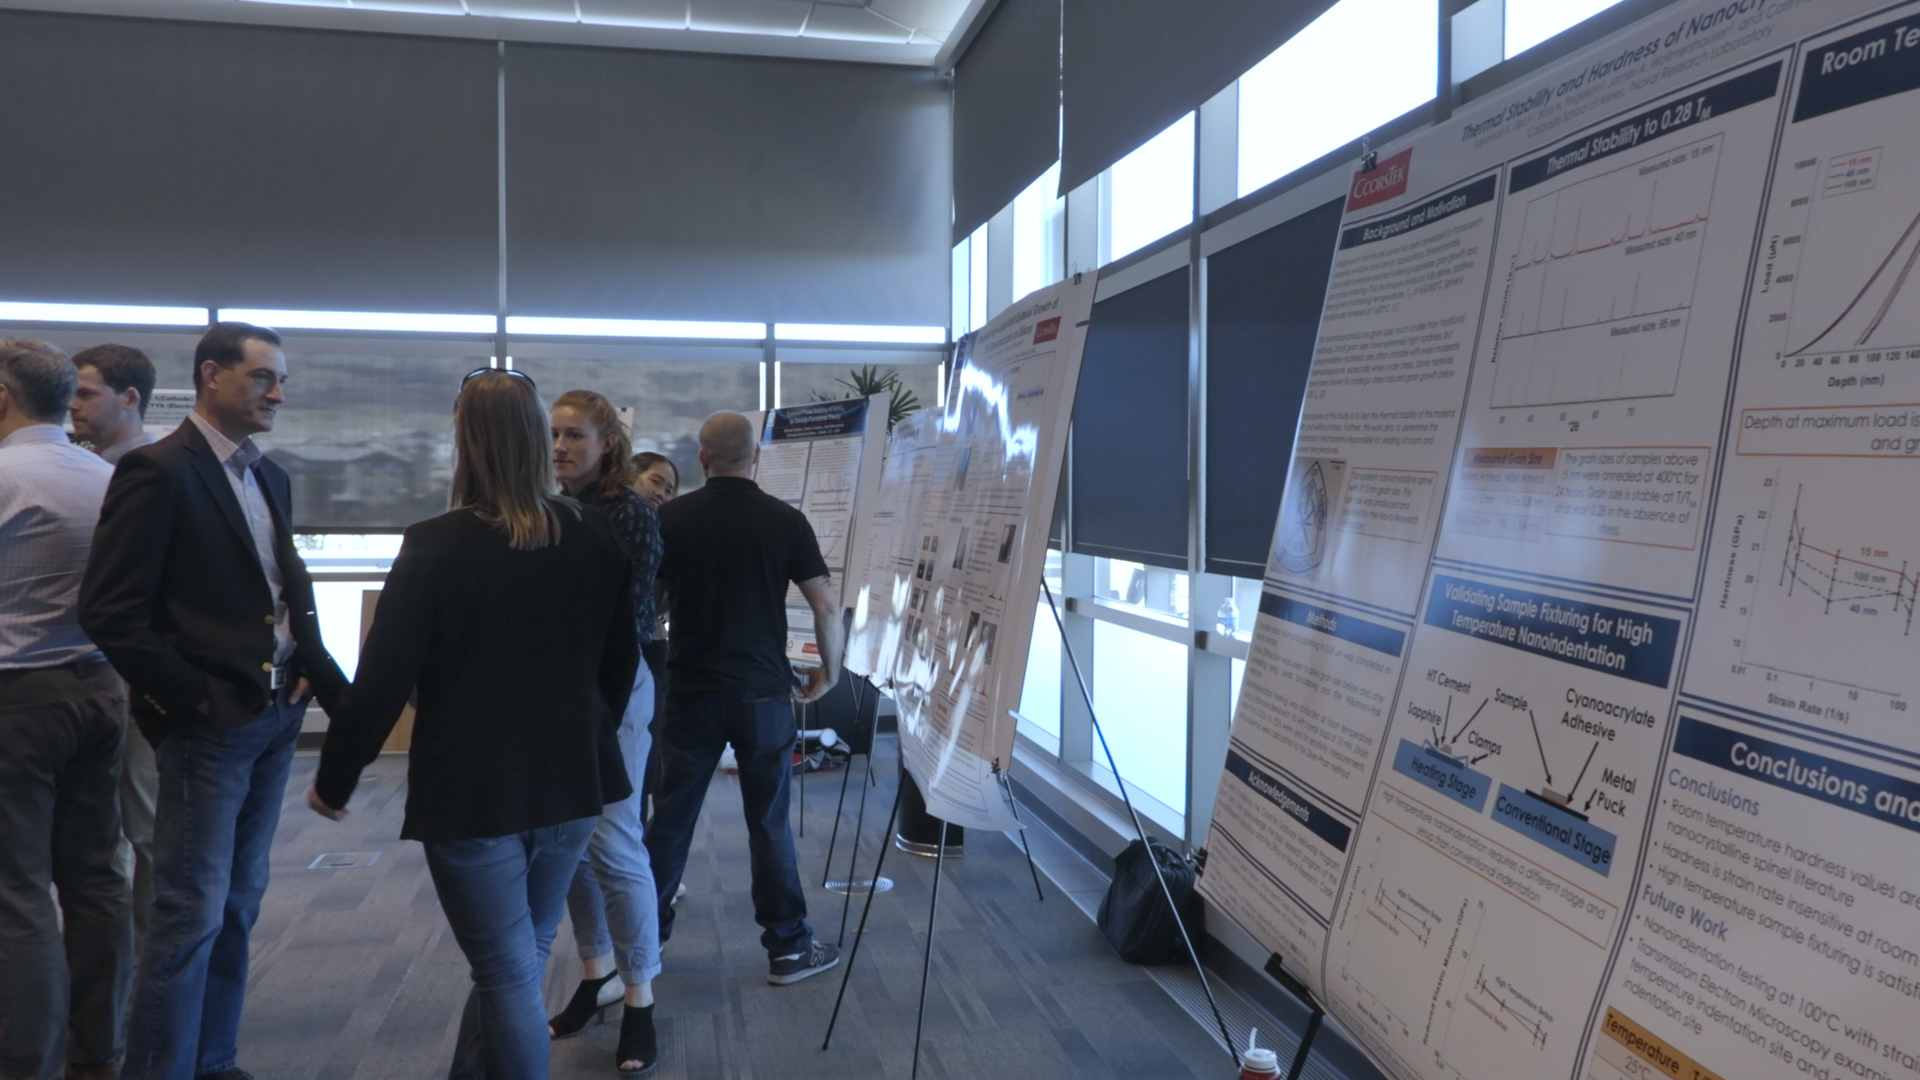 Research posters for research projects at the Colorado School of Mines and CoorsTek Fellows